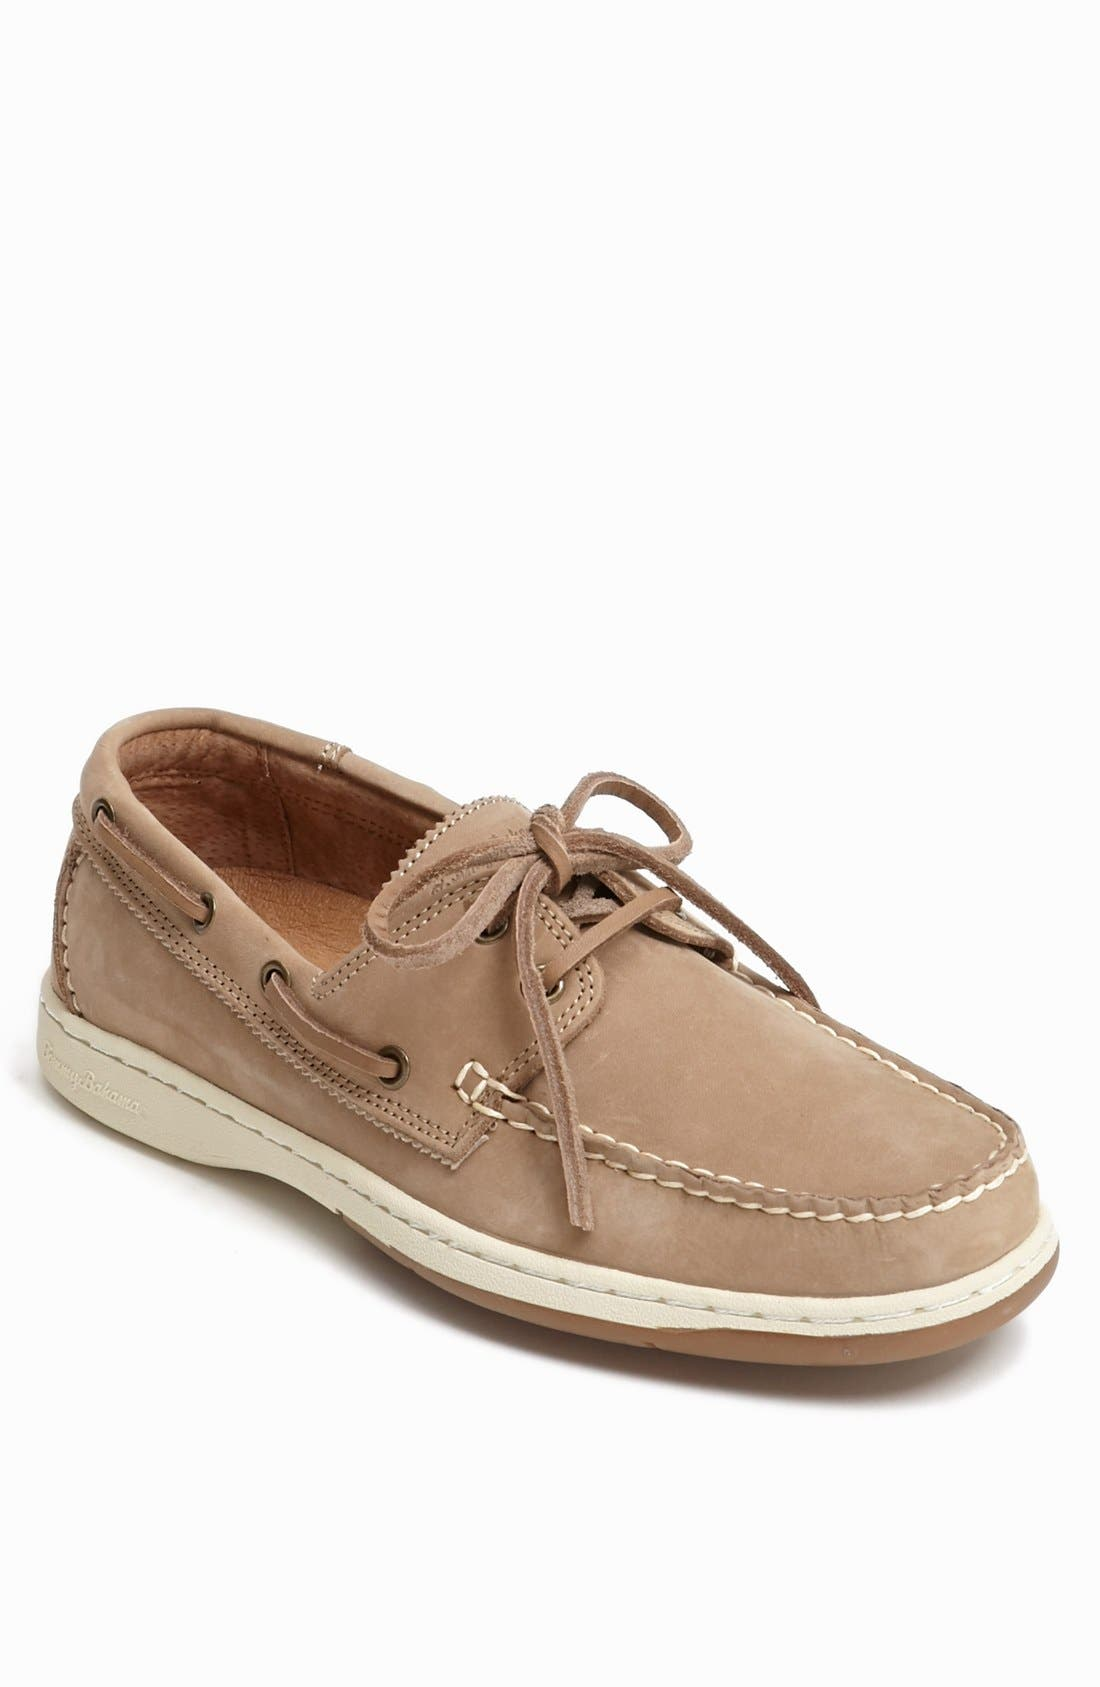 Alternate Image 1 Selected - Tommy Bahama 'Arlington' Boat Shoe